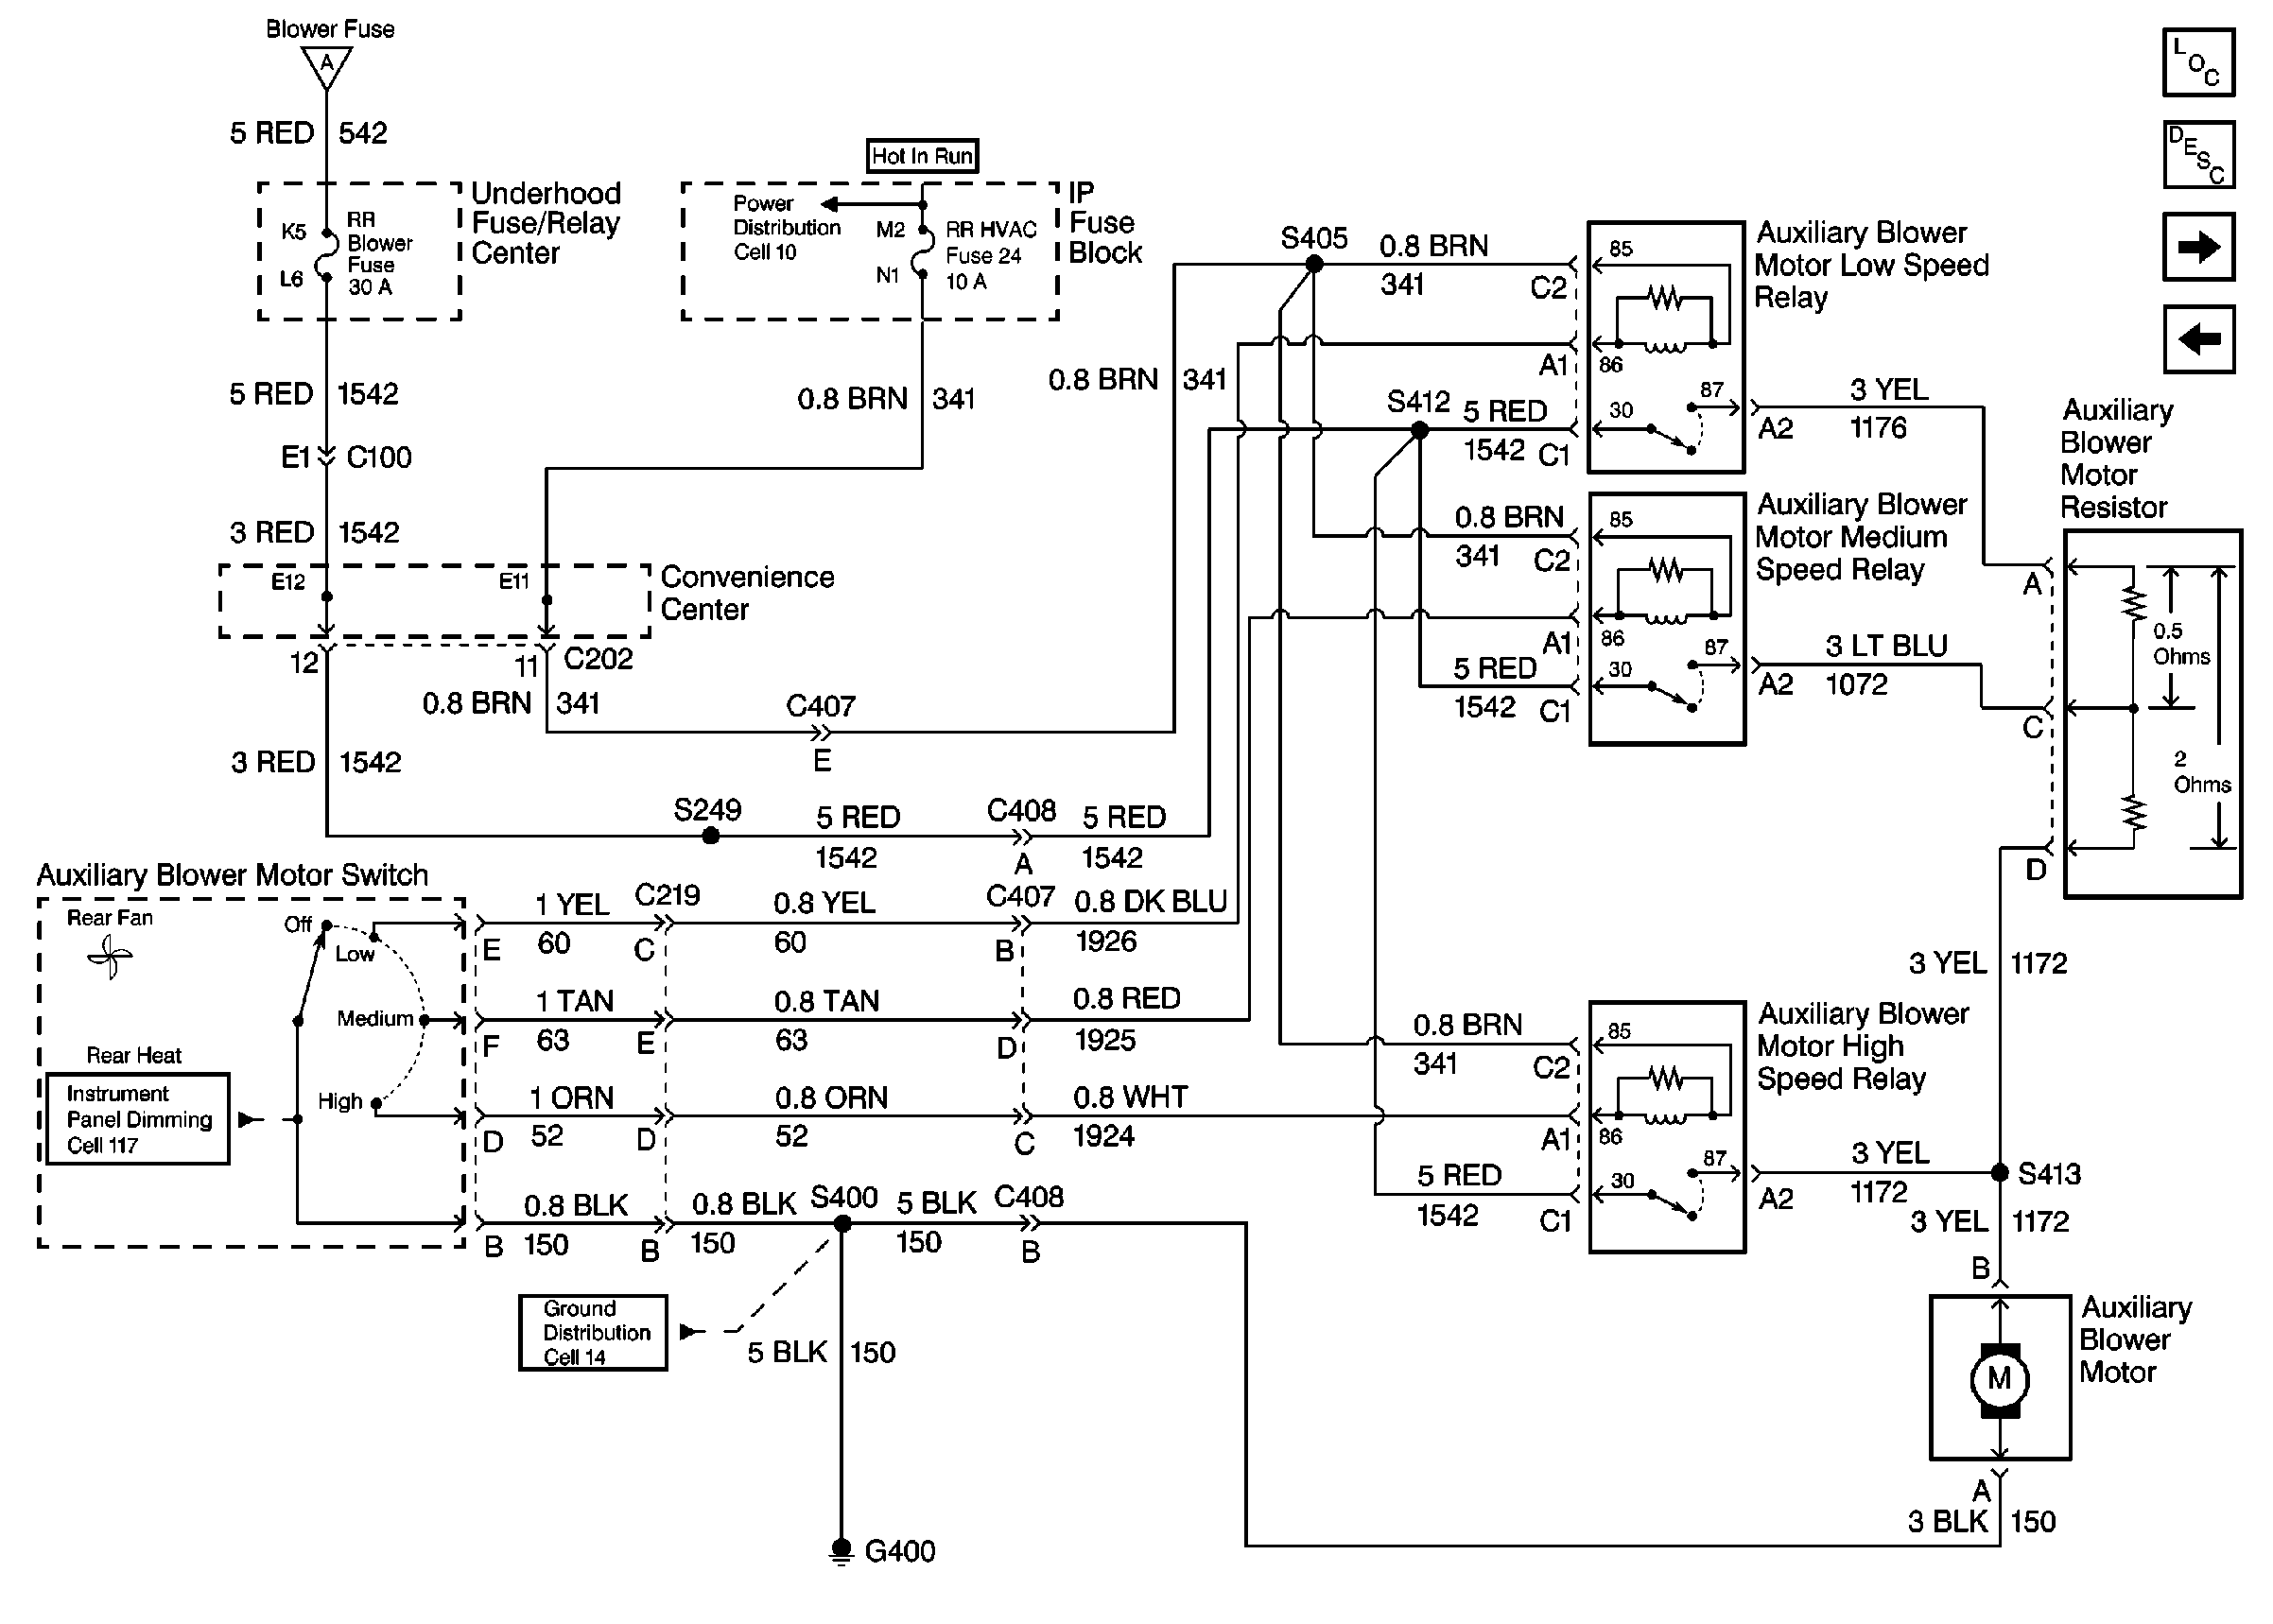 Wiring    Diagram    For 2005    Chevy       Silverado       3500      Wiring    Diagram